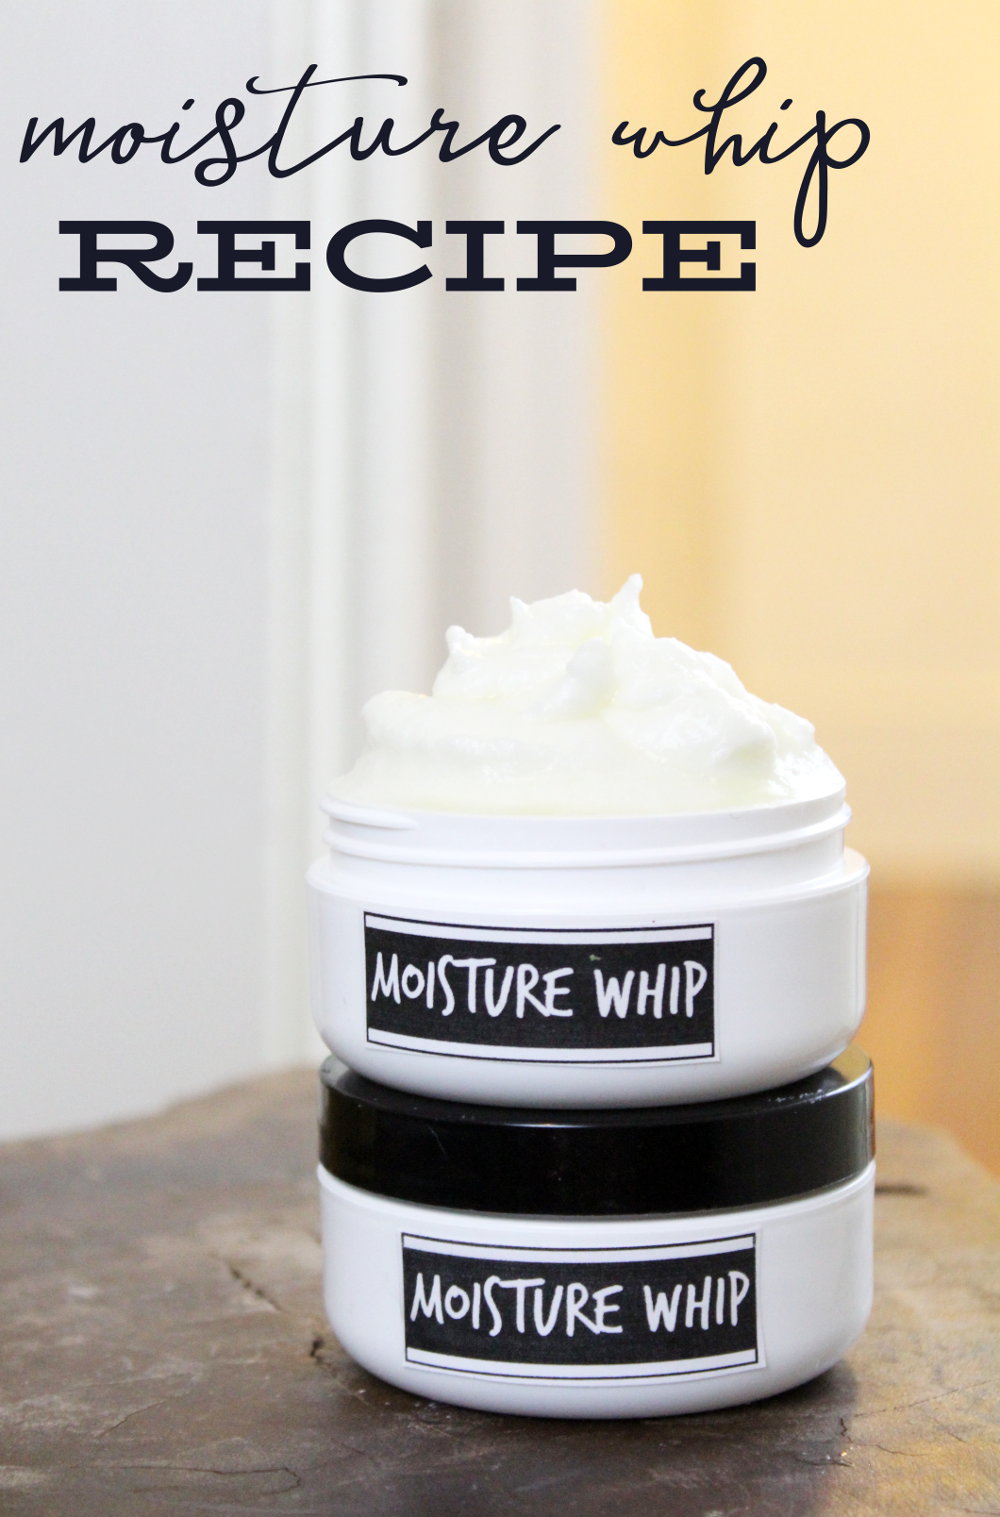 DIY Moisture Whipped Body Butter for Dry Skin! This soothing moisture whip recipe is an absolute dream for dry, parched skin. Crafted using natural ingredients, this ultra luxe moisturizer has a fluffy, cloud like texture that melts instantly into skin when applied. Skin soothing butters, aloe vera and witch hazel extract offer rich moisture that promotes skin health while a calming essential oil blend lends its aromatherapeutic properties. #moisturewhip #bodybutter #diy